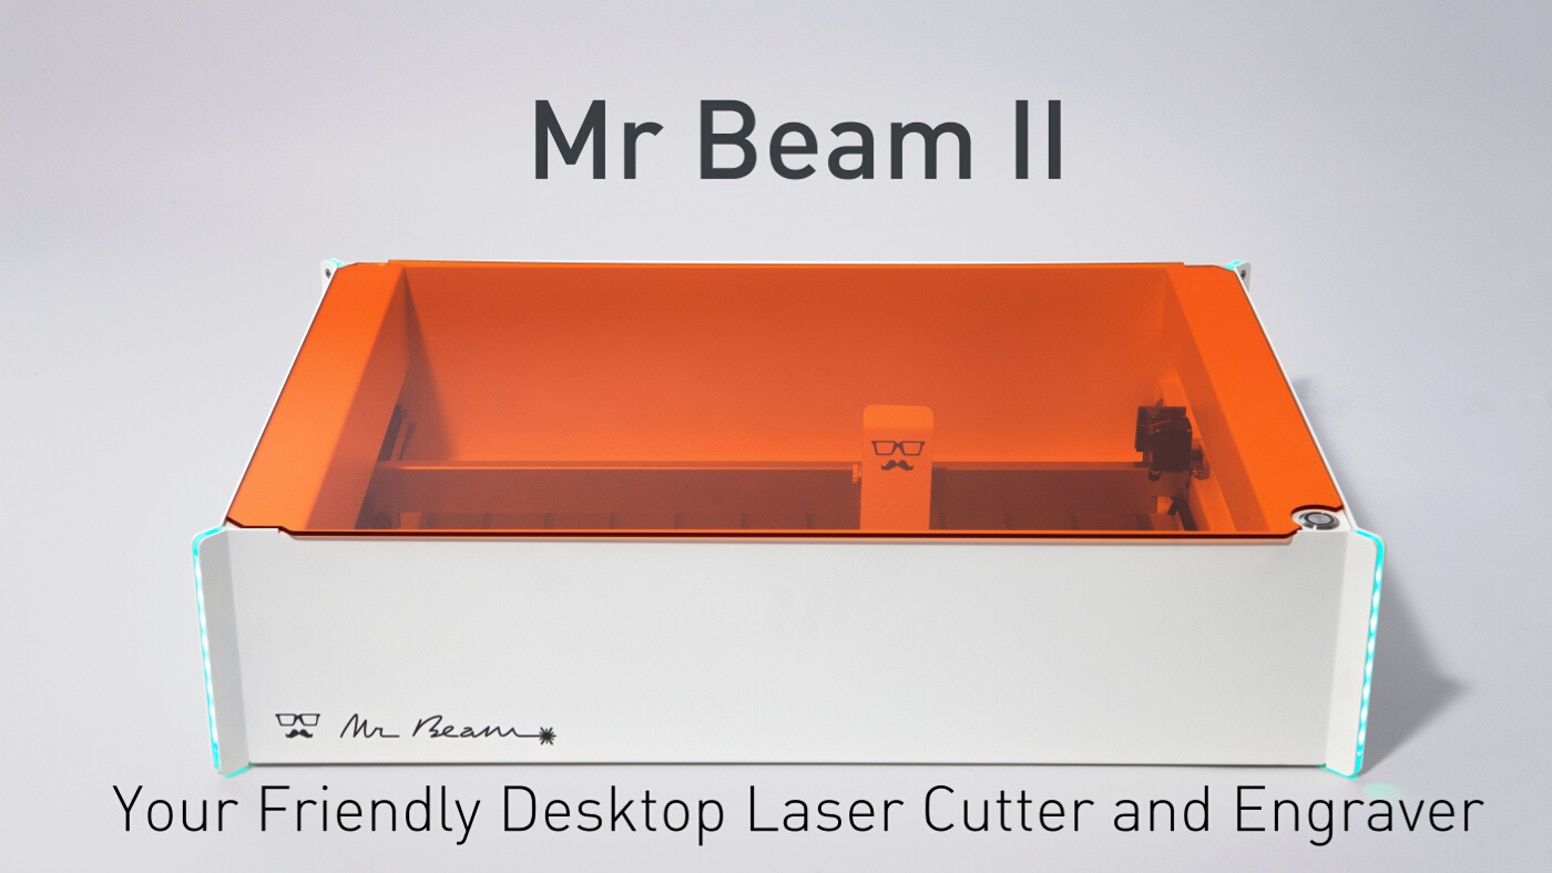 Mr Beam II - The Desktop Laser Cutter and Engraver by Mr